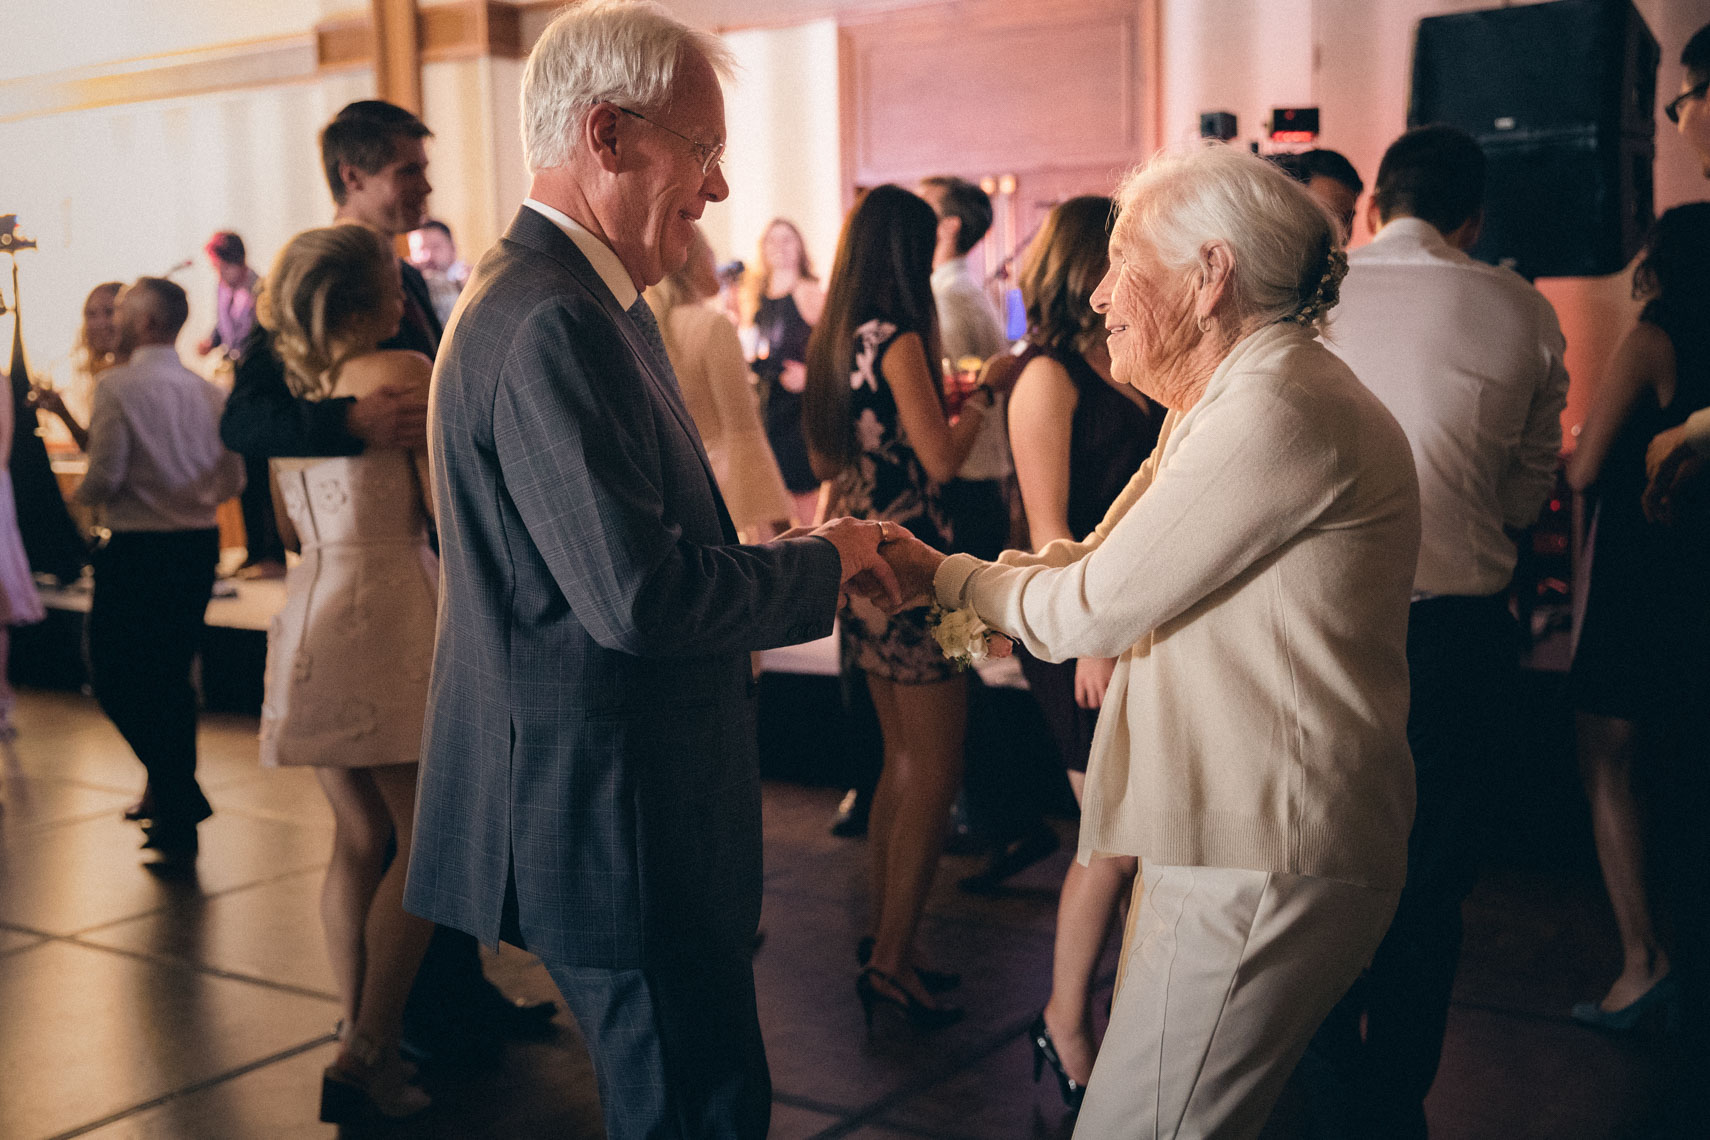 Grandparents on the dance floor during wedding at Whistler venue